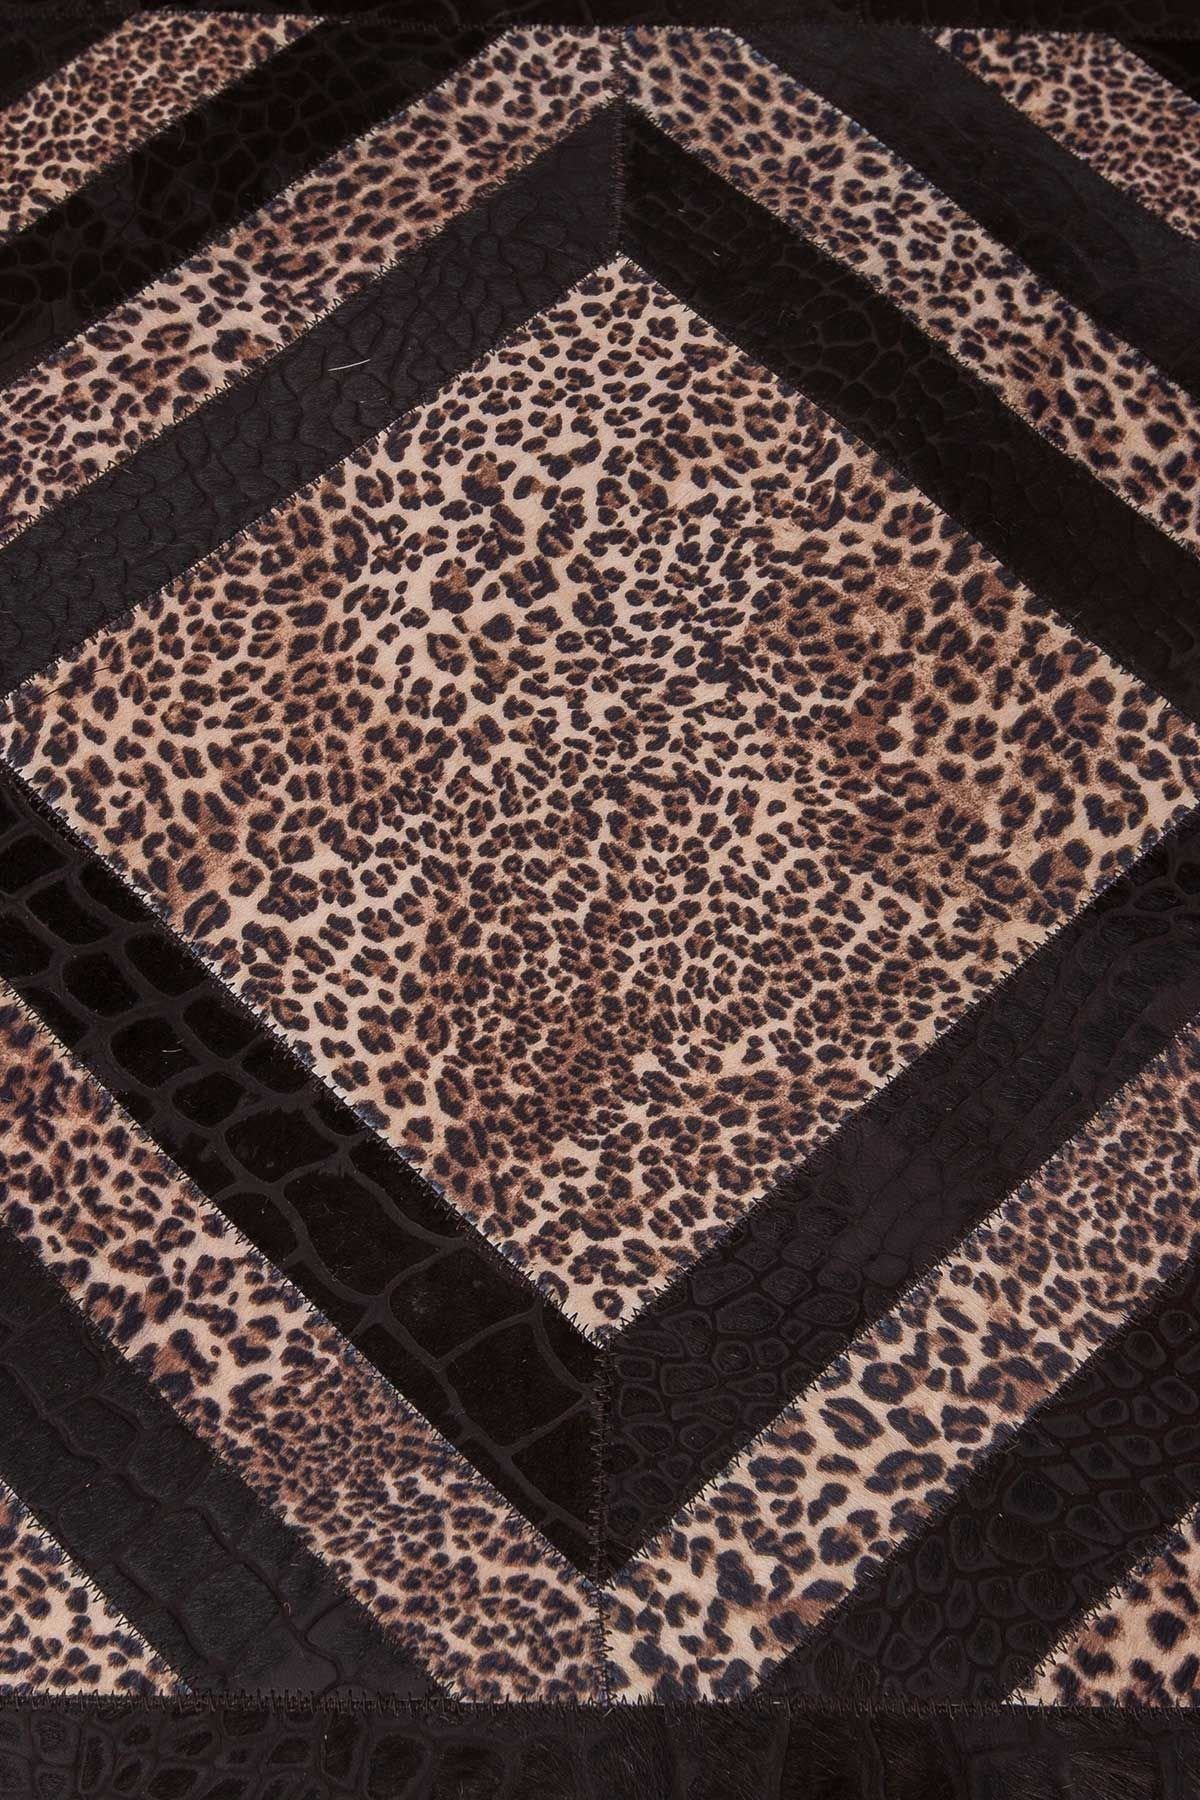 Erdogan Deri Rug From Crocodile Leather With Leopard Pattern Brown